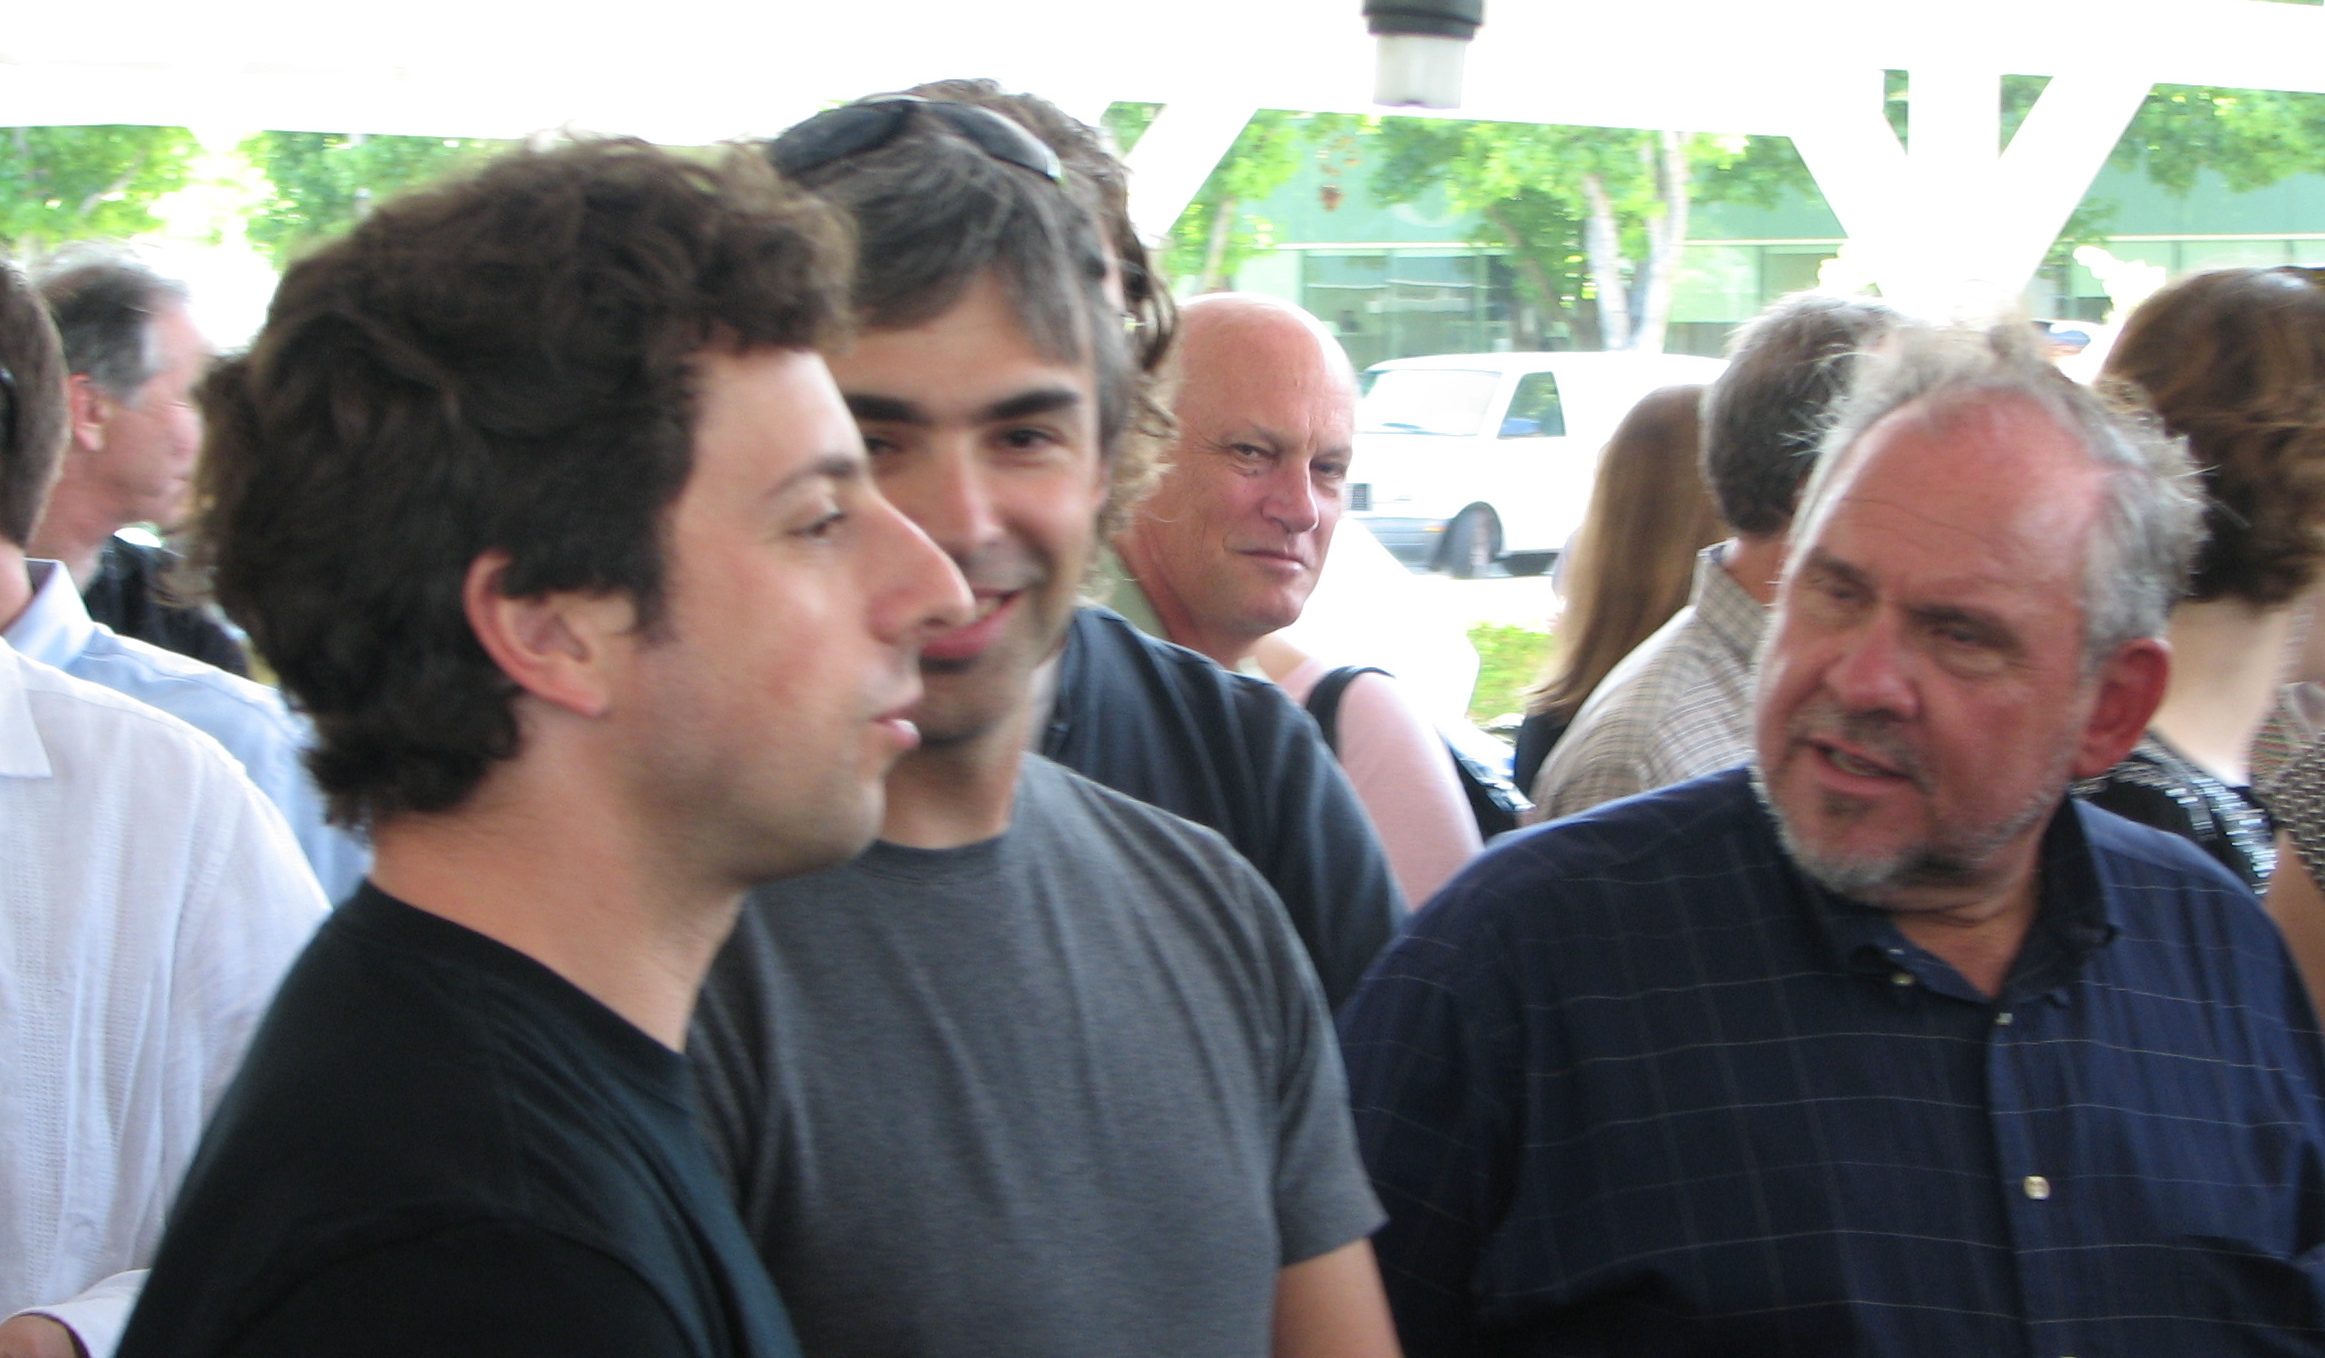 (Sergey Brin, Larry Page, and the man who turned me into the FBI)